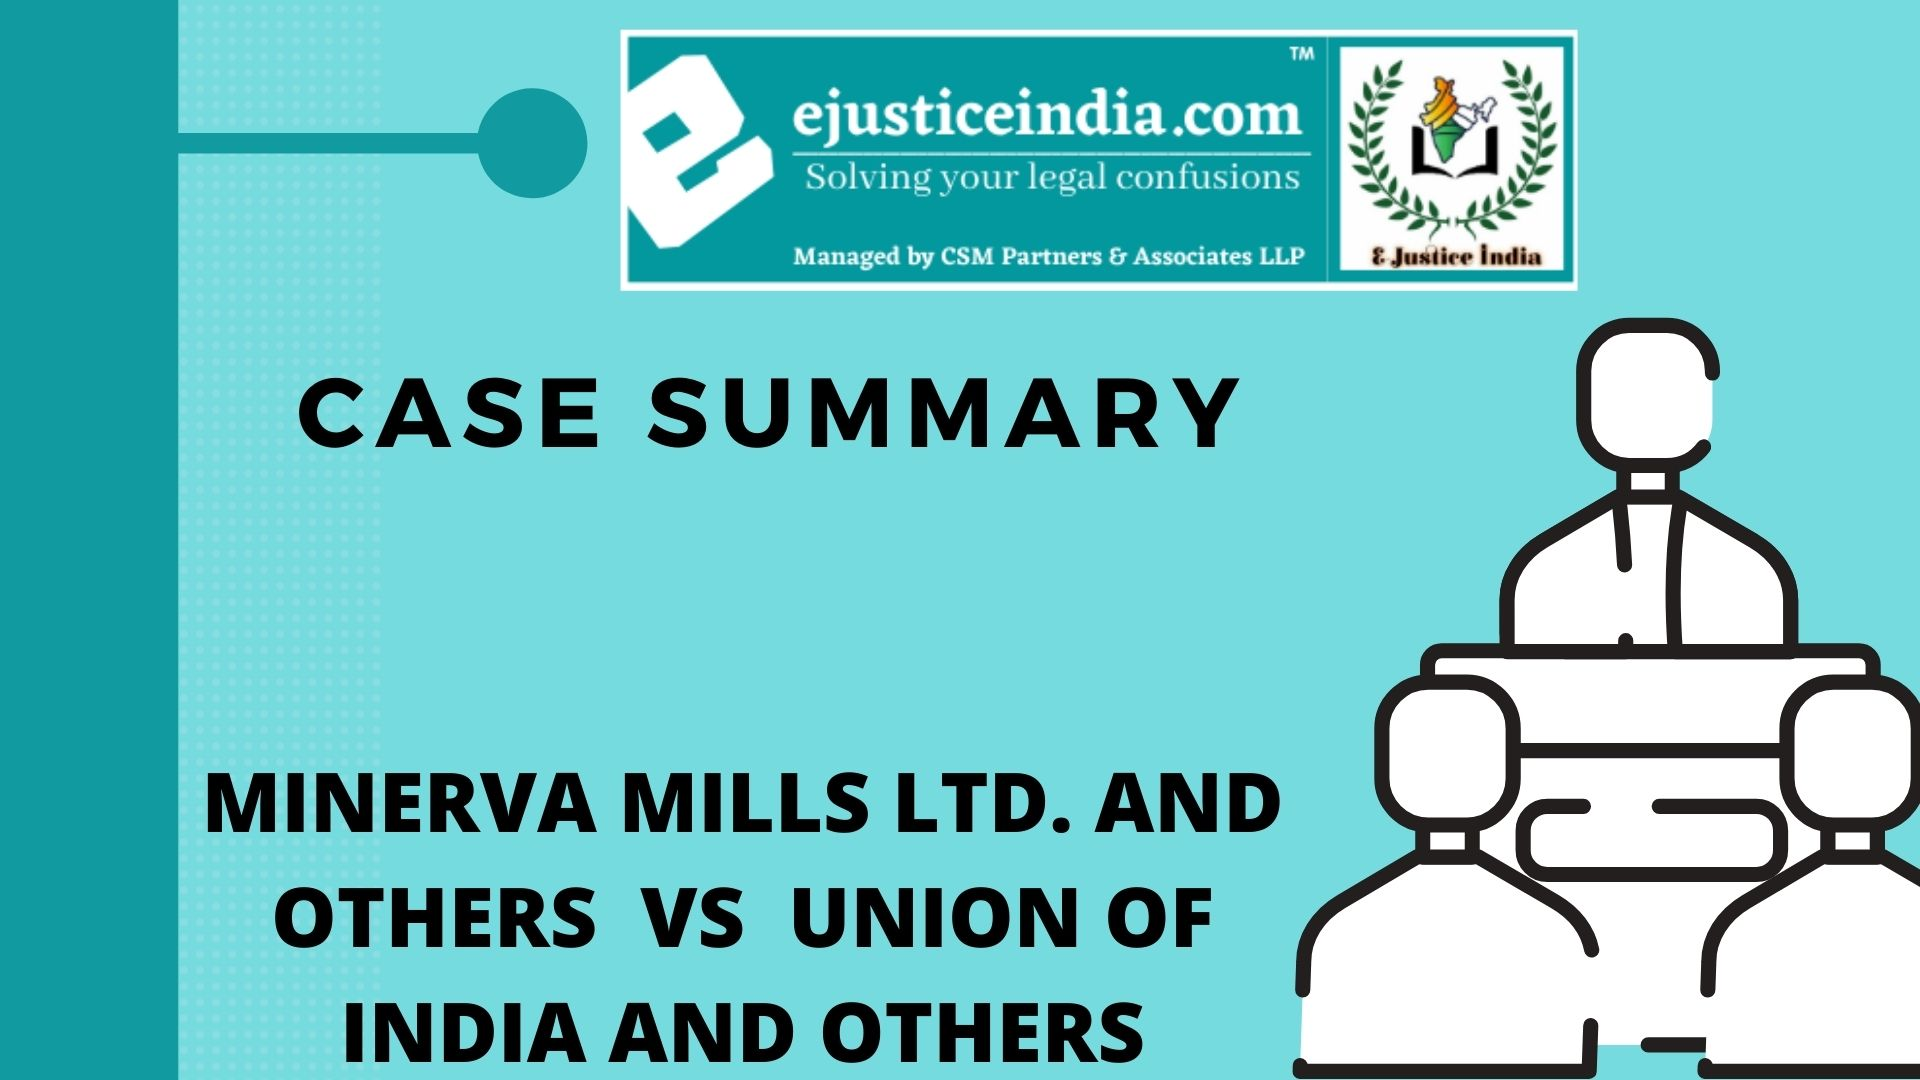 MINERVA MILLS LTD. AND OTHERS VS UNION OF INDIA AND OTHERS